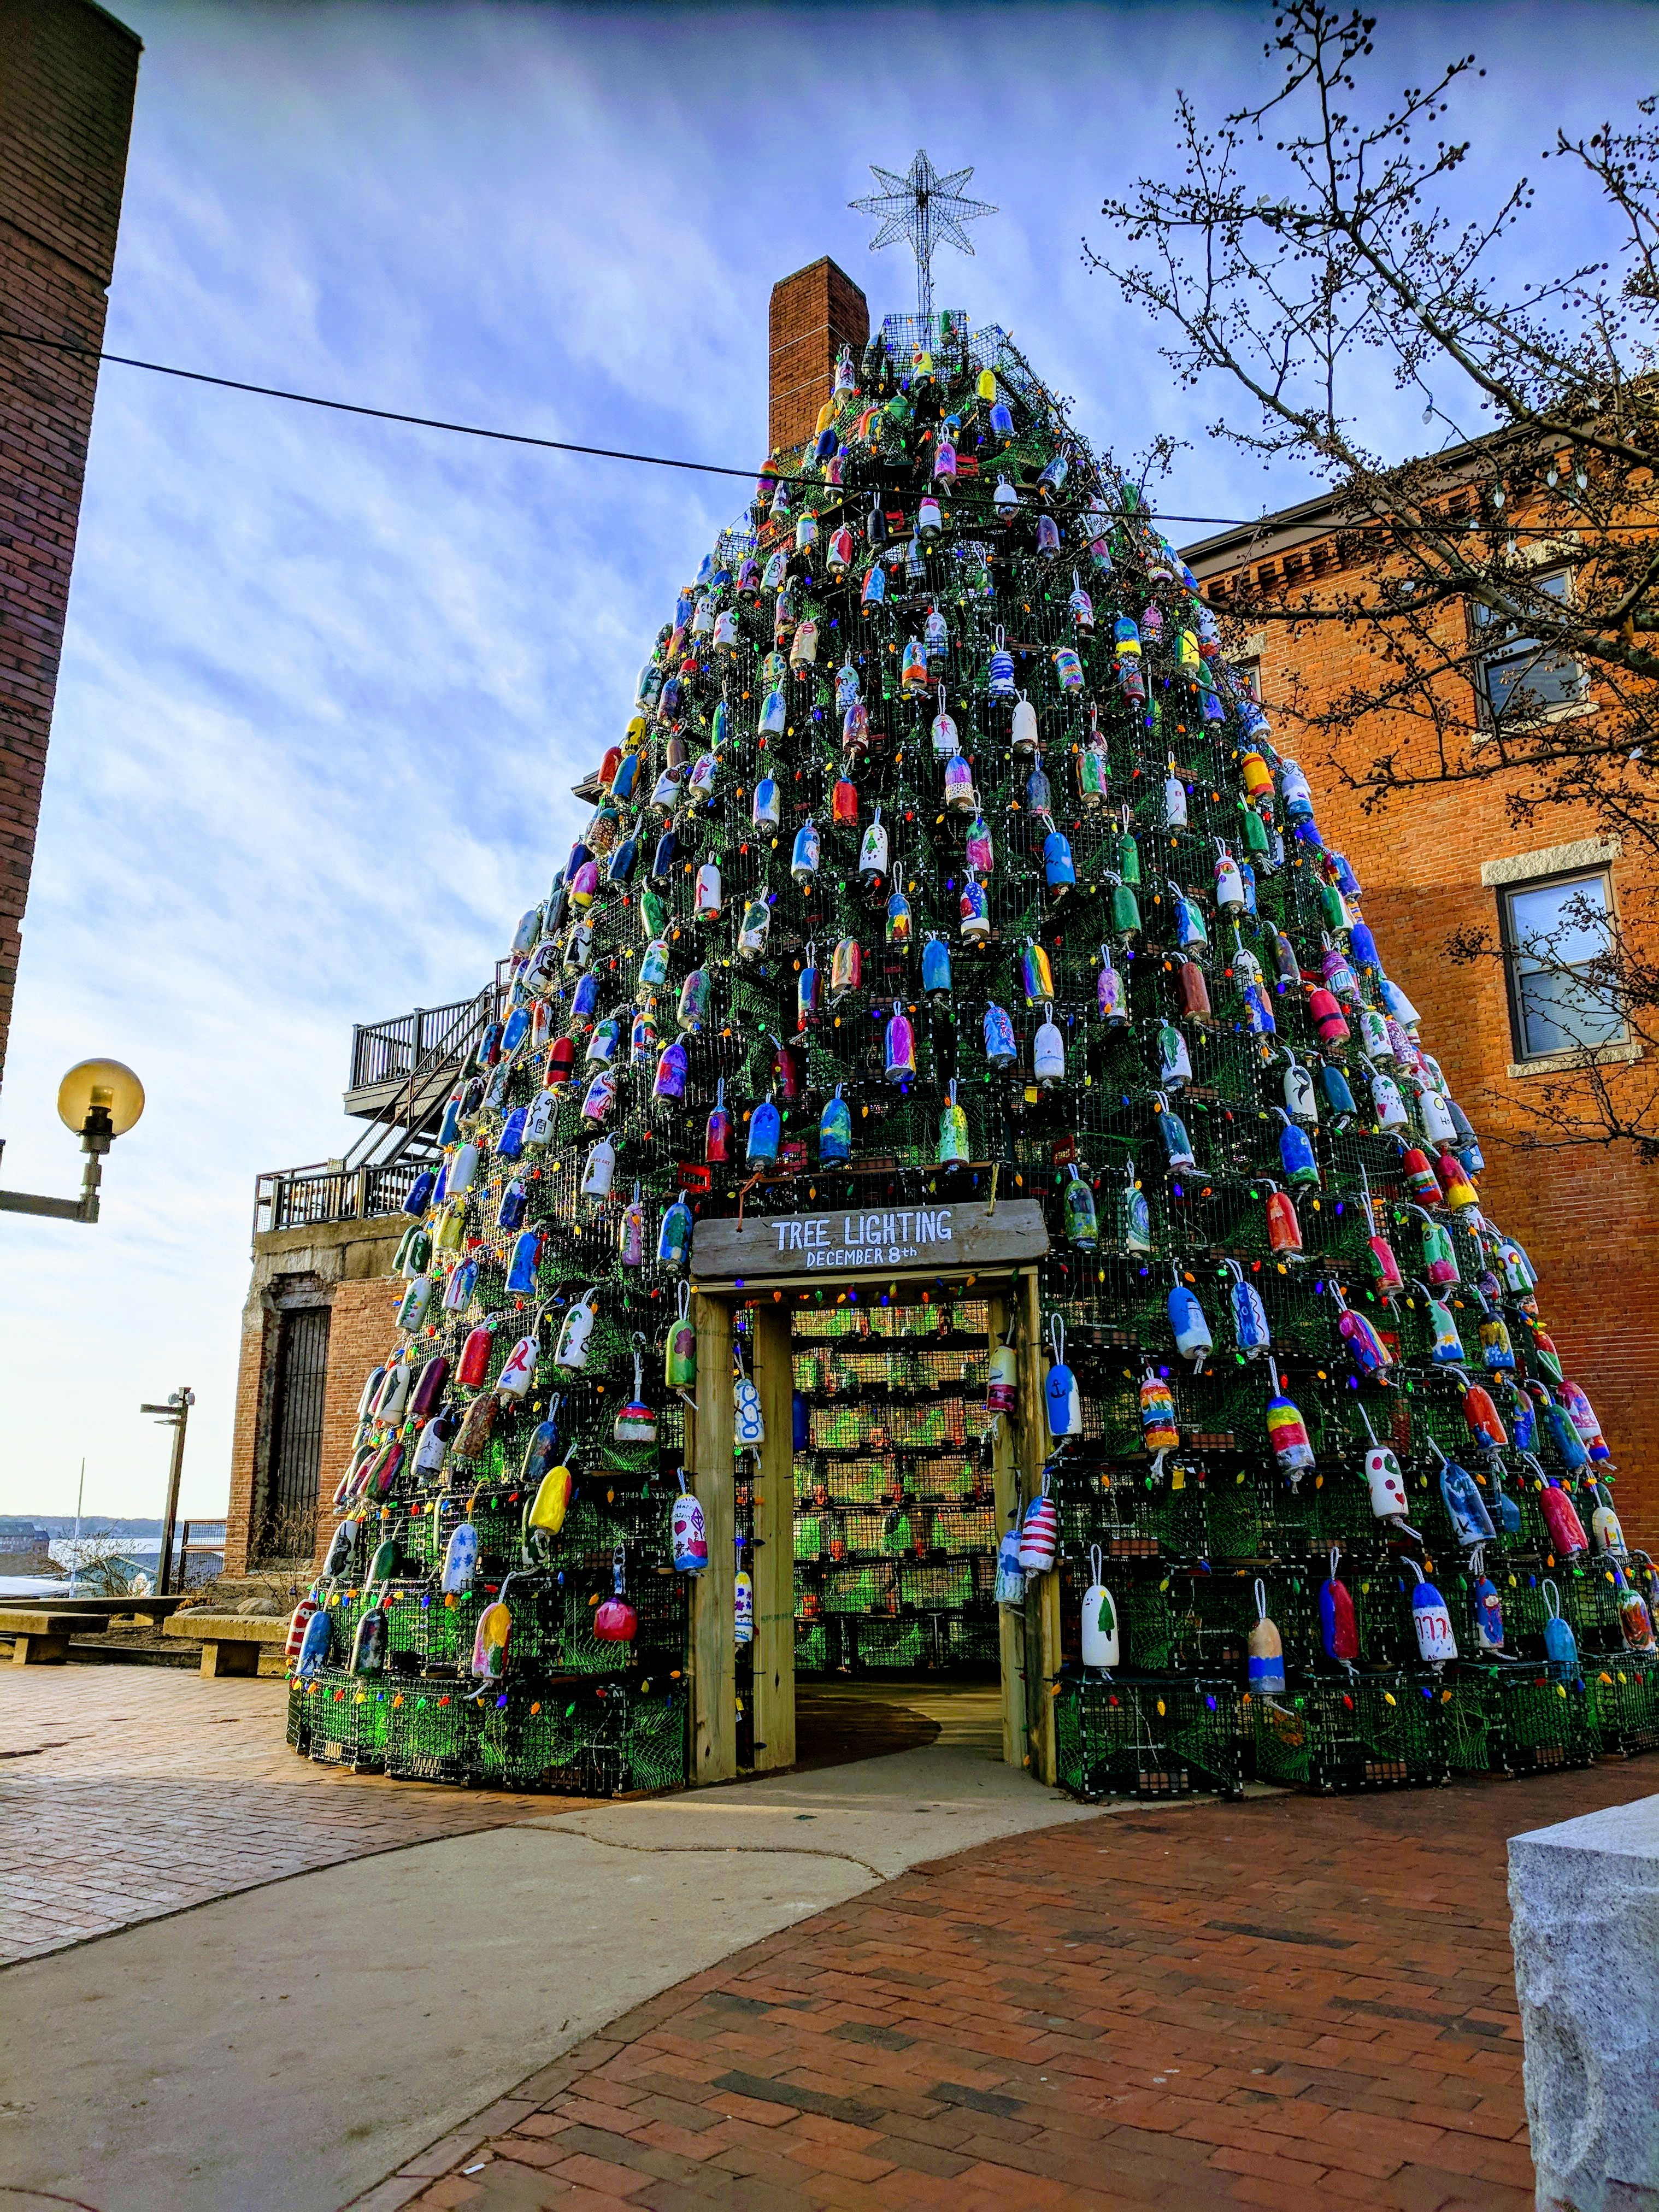 Gather round_lobster trap buoy tree morning light_Gloucester MA_vista to inner harbor from Main St_ 20181209_©c ryan